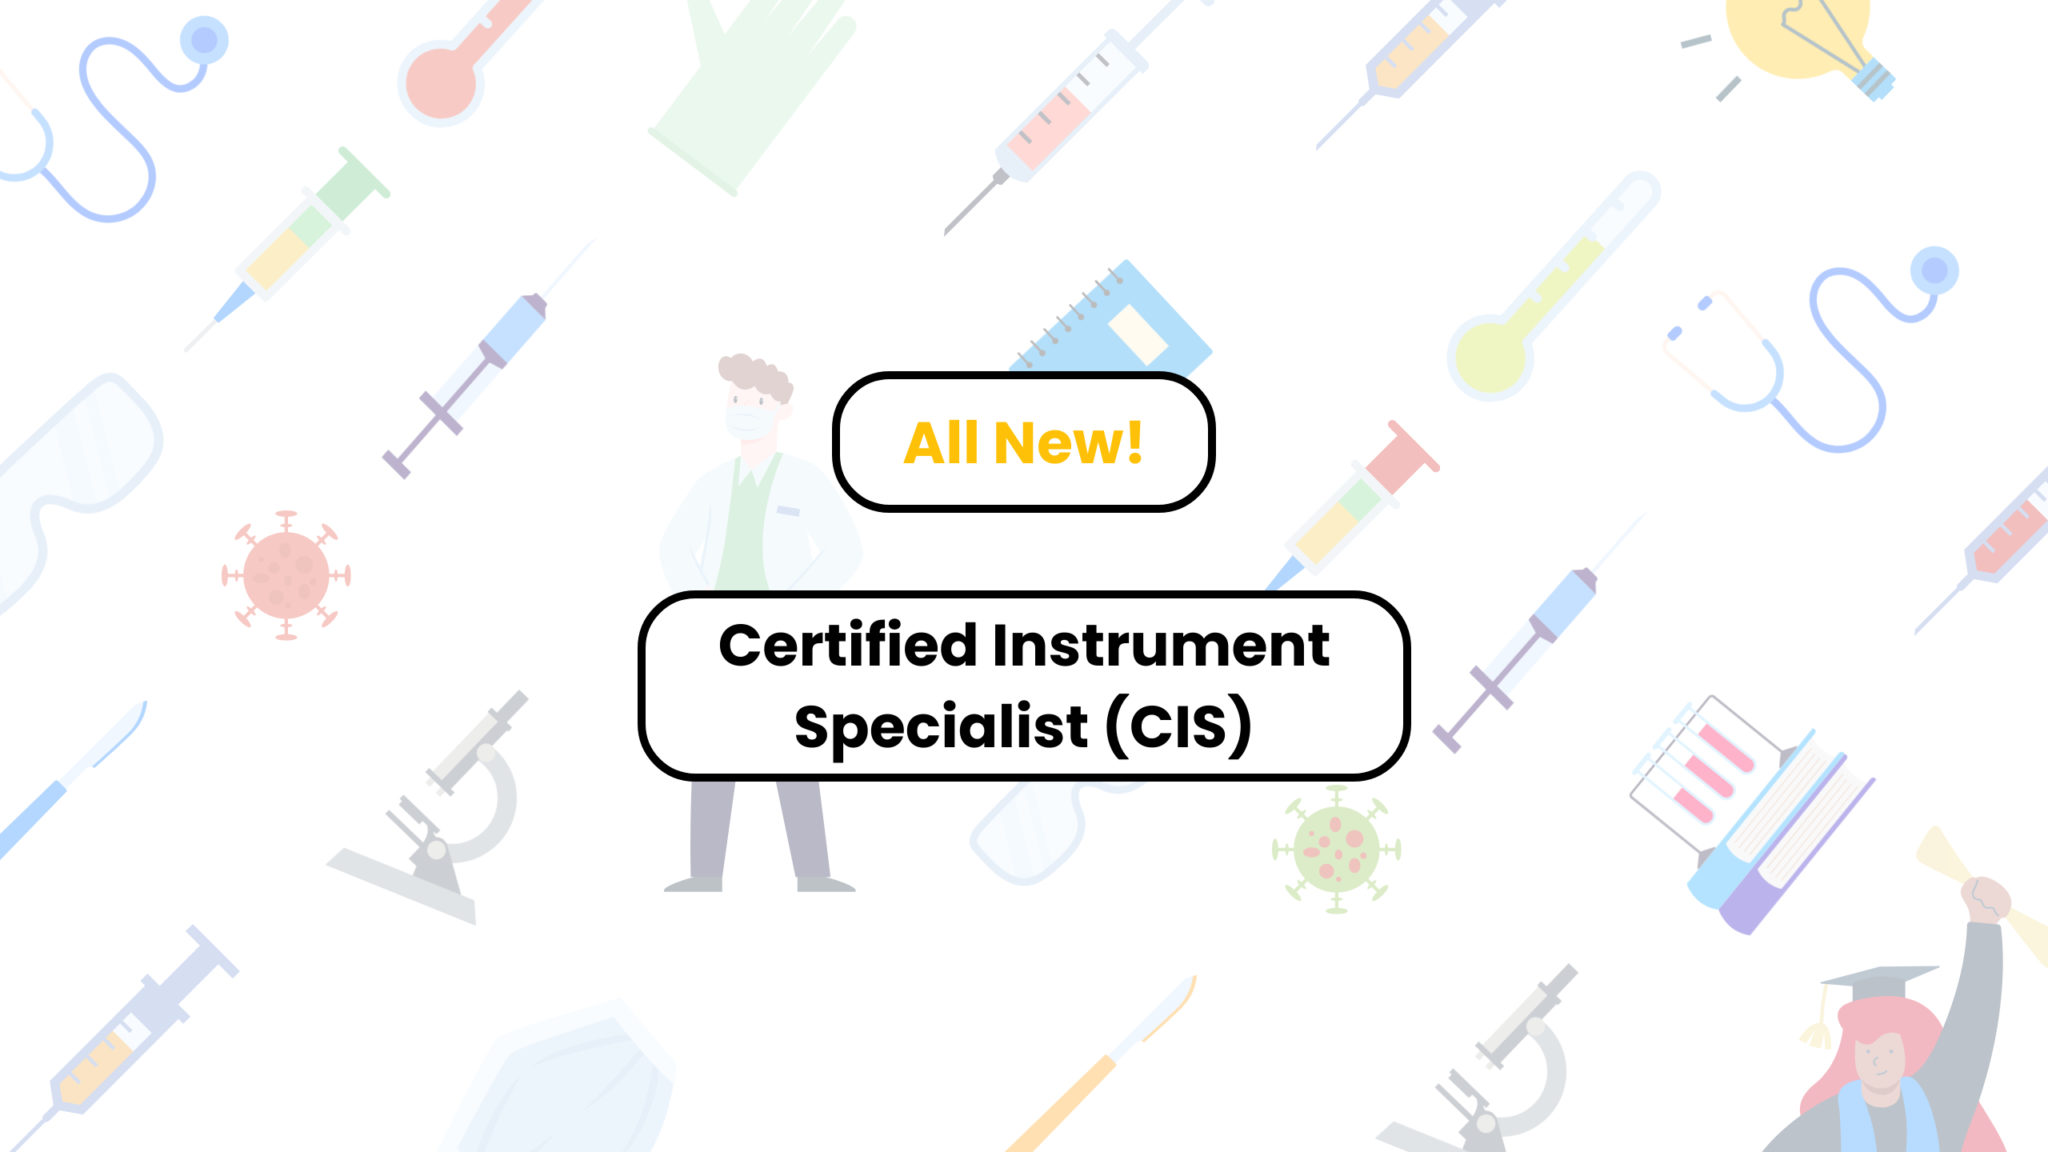 Certified Instrument Specialist (CIS) Course Main Page Advertisement